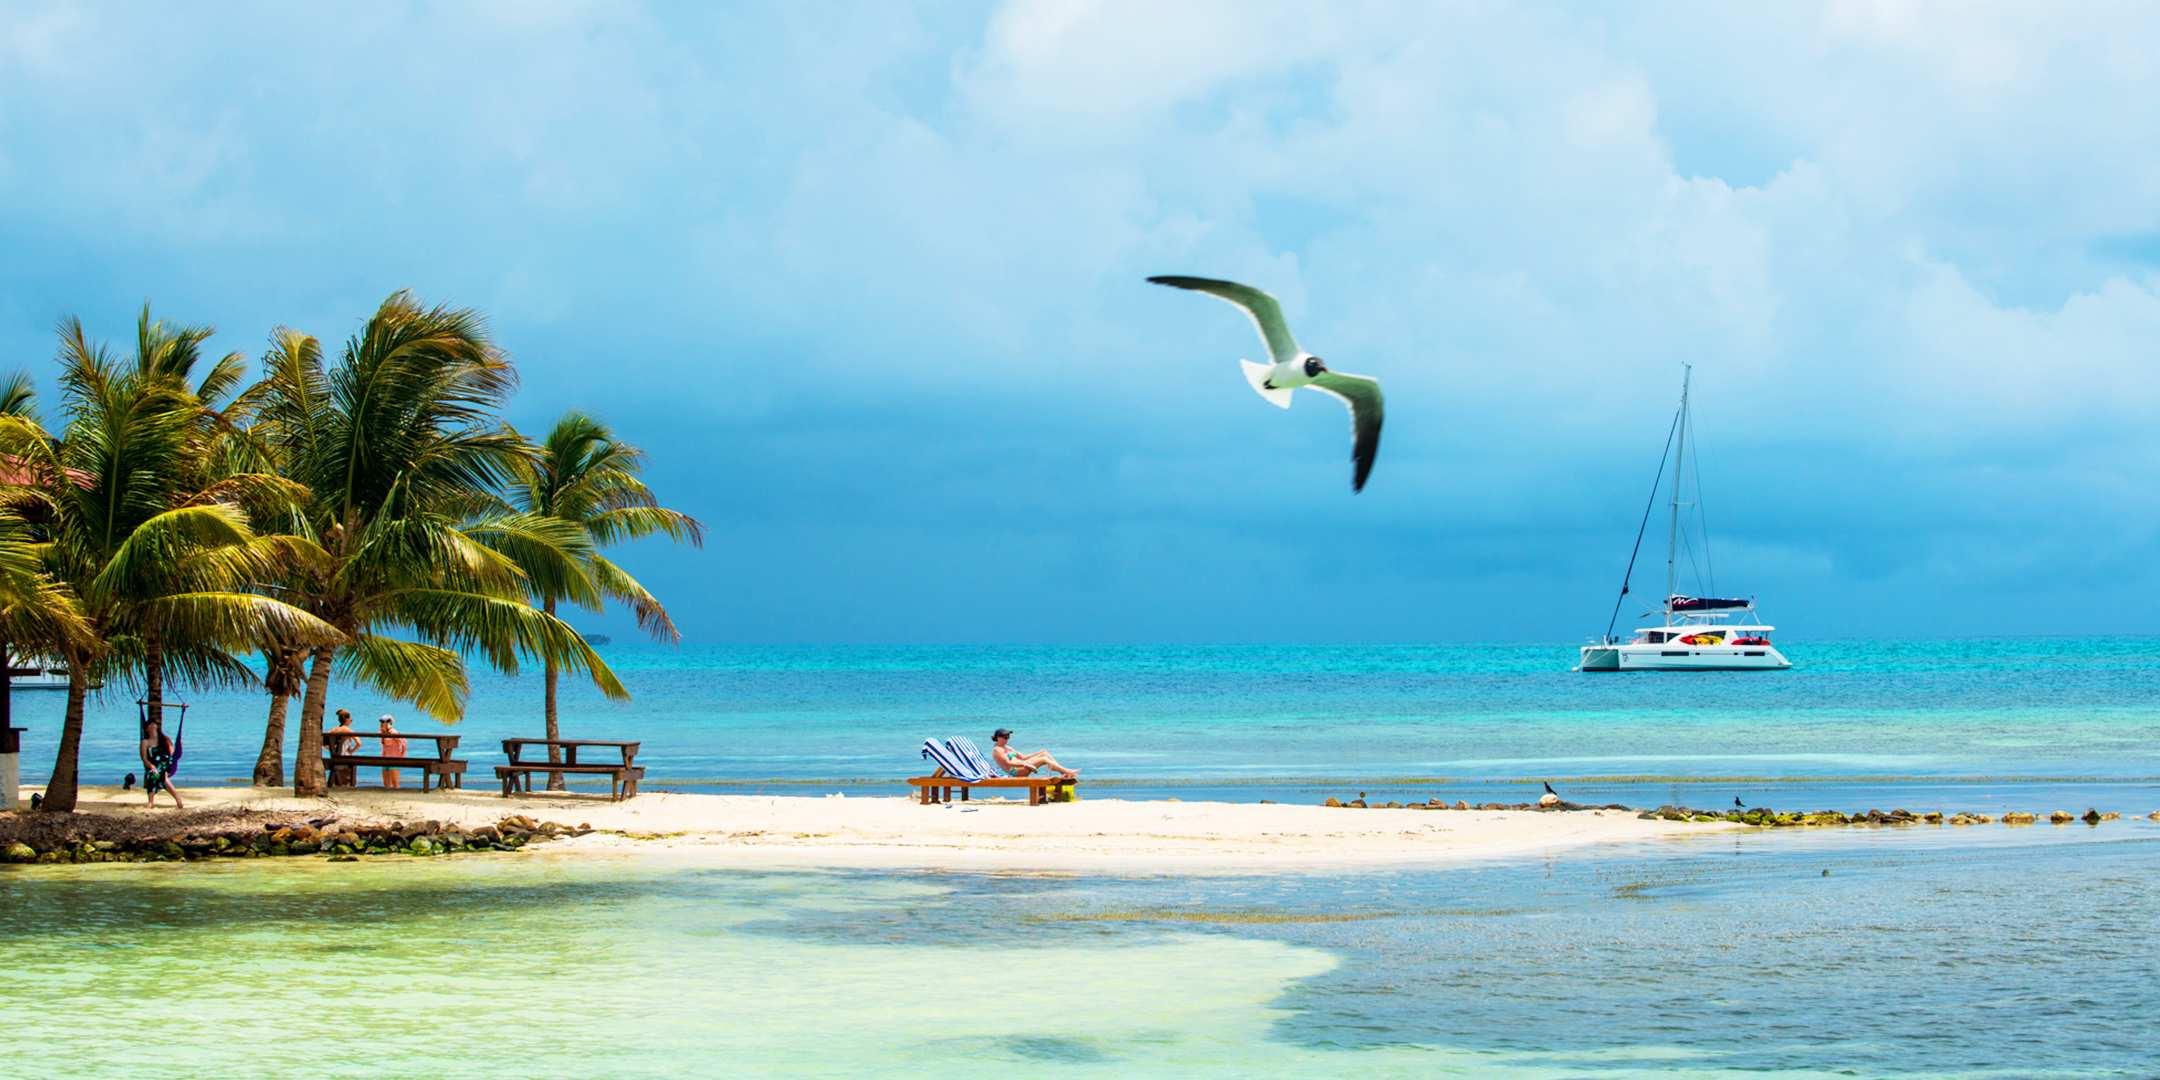 us_tm_1603_0318_blog-best-summer-vacation-spots_belize.jpg